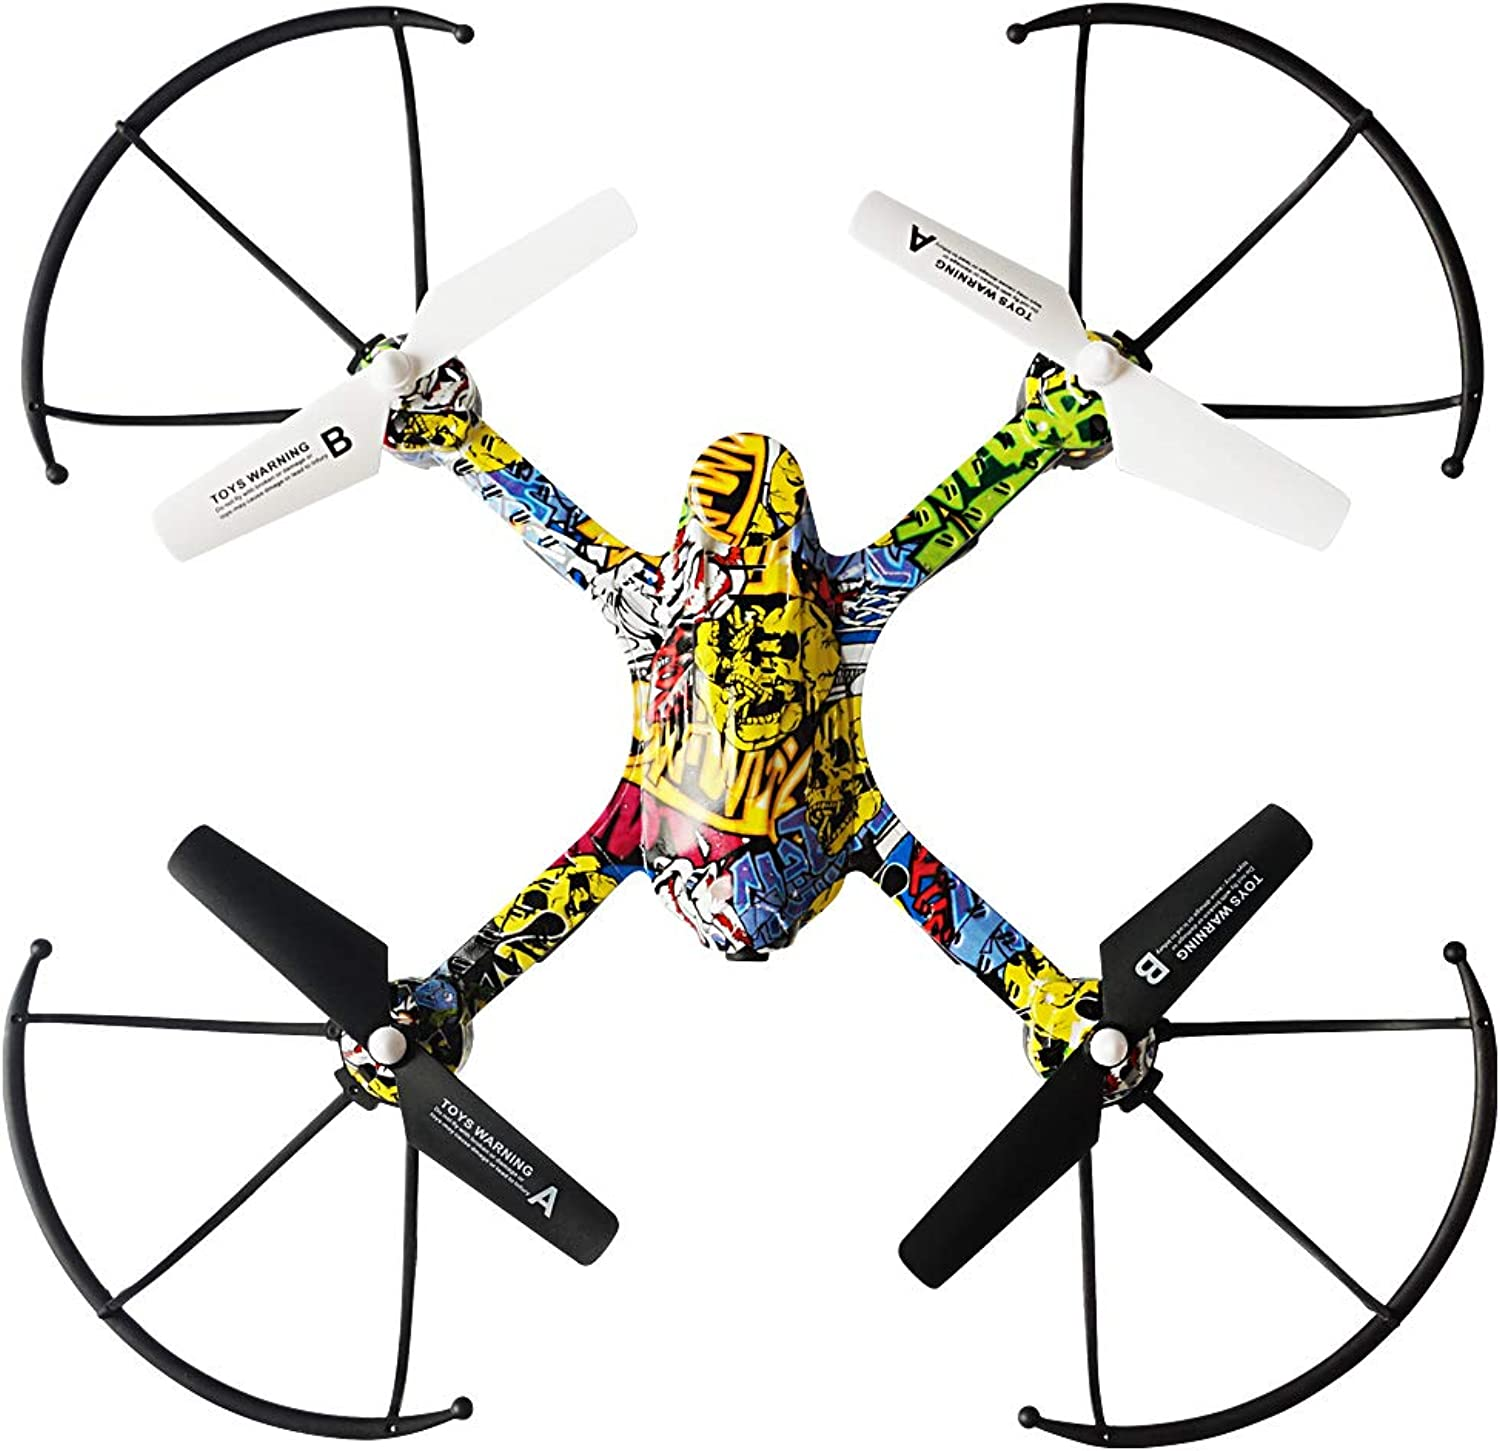 HAHA Antifall Drone with HD Camera Live Video, Foldable Quadcopter with Adjustable Wide Angle Camera, Follow Me, Headless Mode, Long Flying Time, Selfie Drone